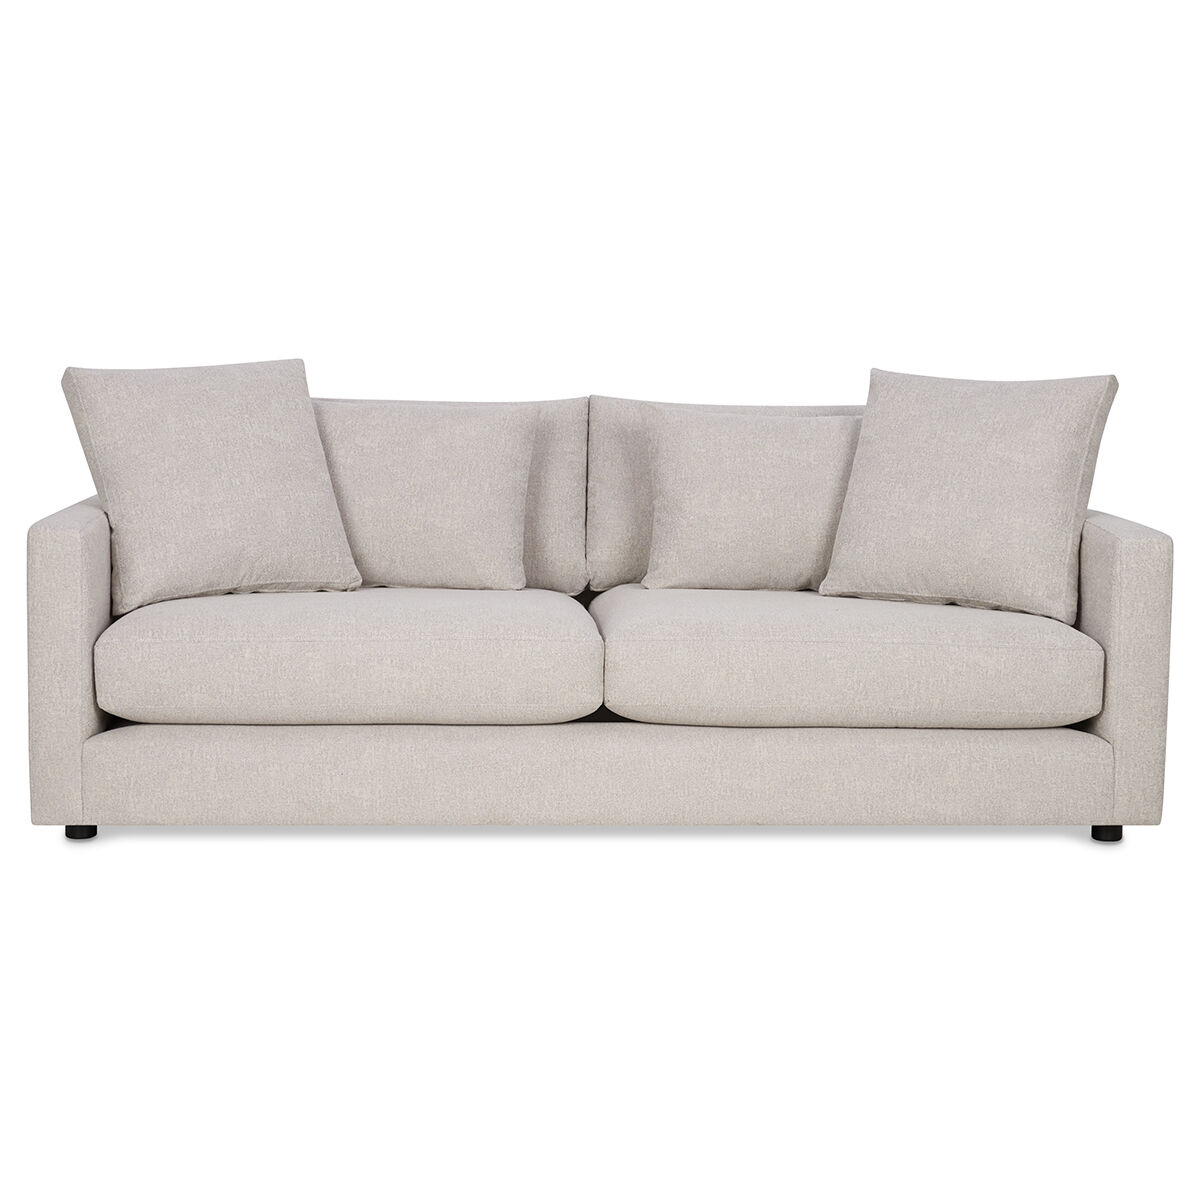 Sofa Leather Repair Toronto Berg Sofa Aiden Platinum